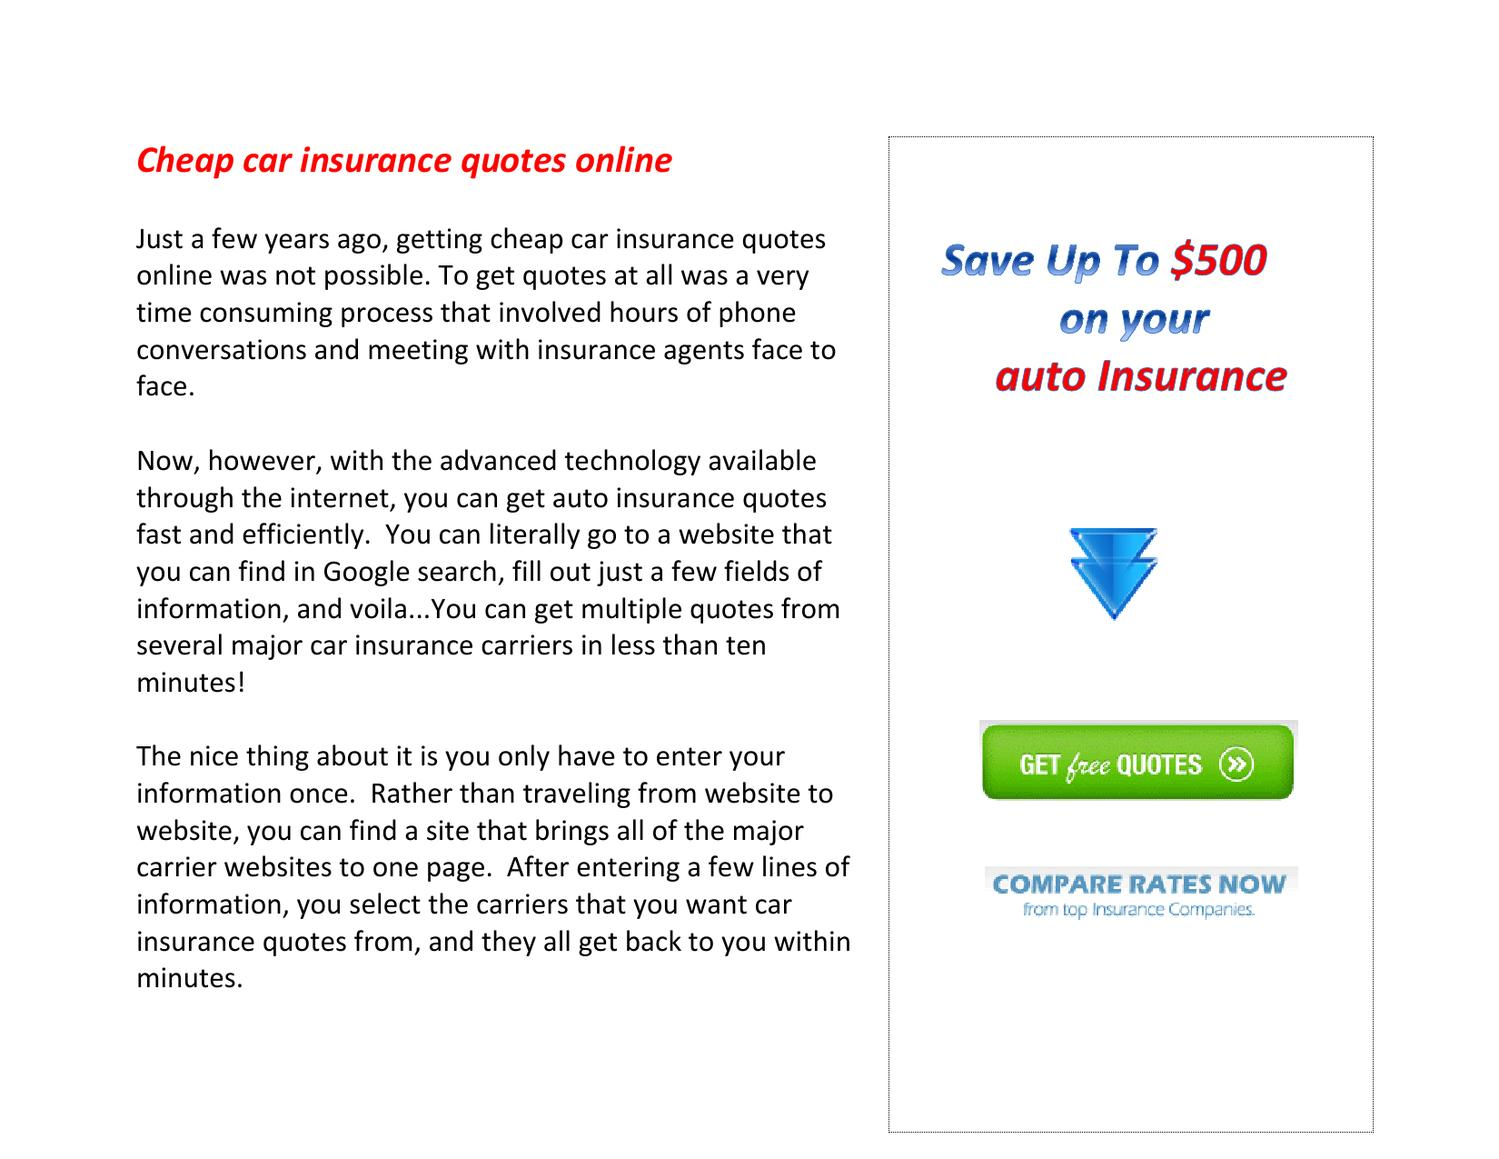 Compare Cheap Car Insurance Deals Comparethemarket. How To Plan A Graduation Party. Marriott Rewards Credit Card 70000. Website And Graphic Design Services. Online Bidding Software Signature Home Health. The Art Institute Las Vegas Qui Tam Claims. Travel Reimbursement Letter Meaning Of Uber. Certified Ekg Technician Salary. University Of Maryland Online Bachelors Degree Programs